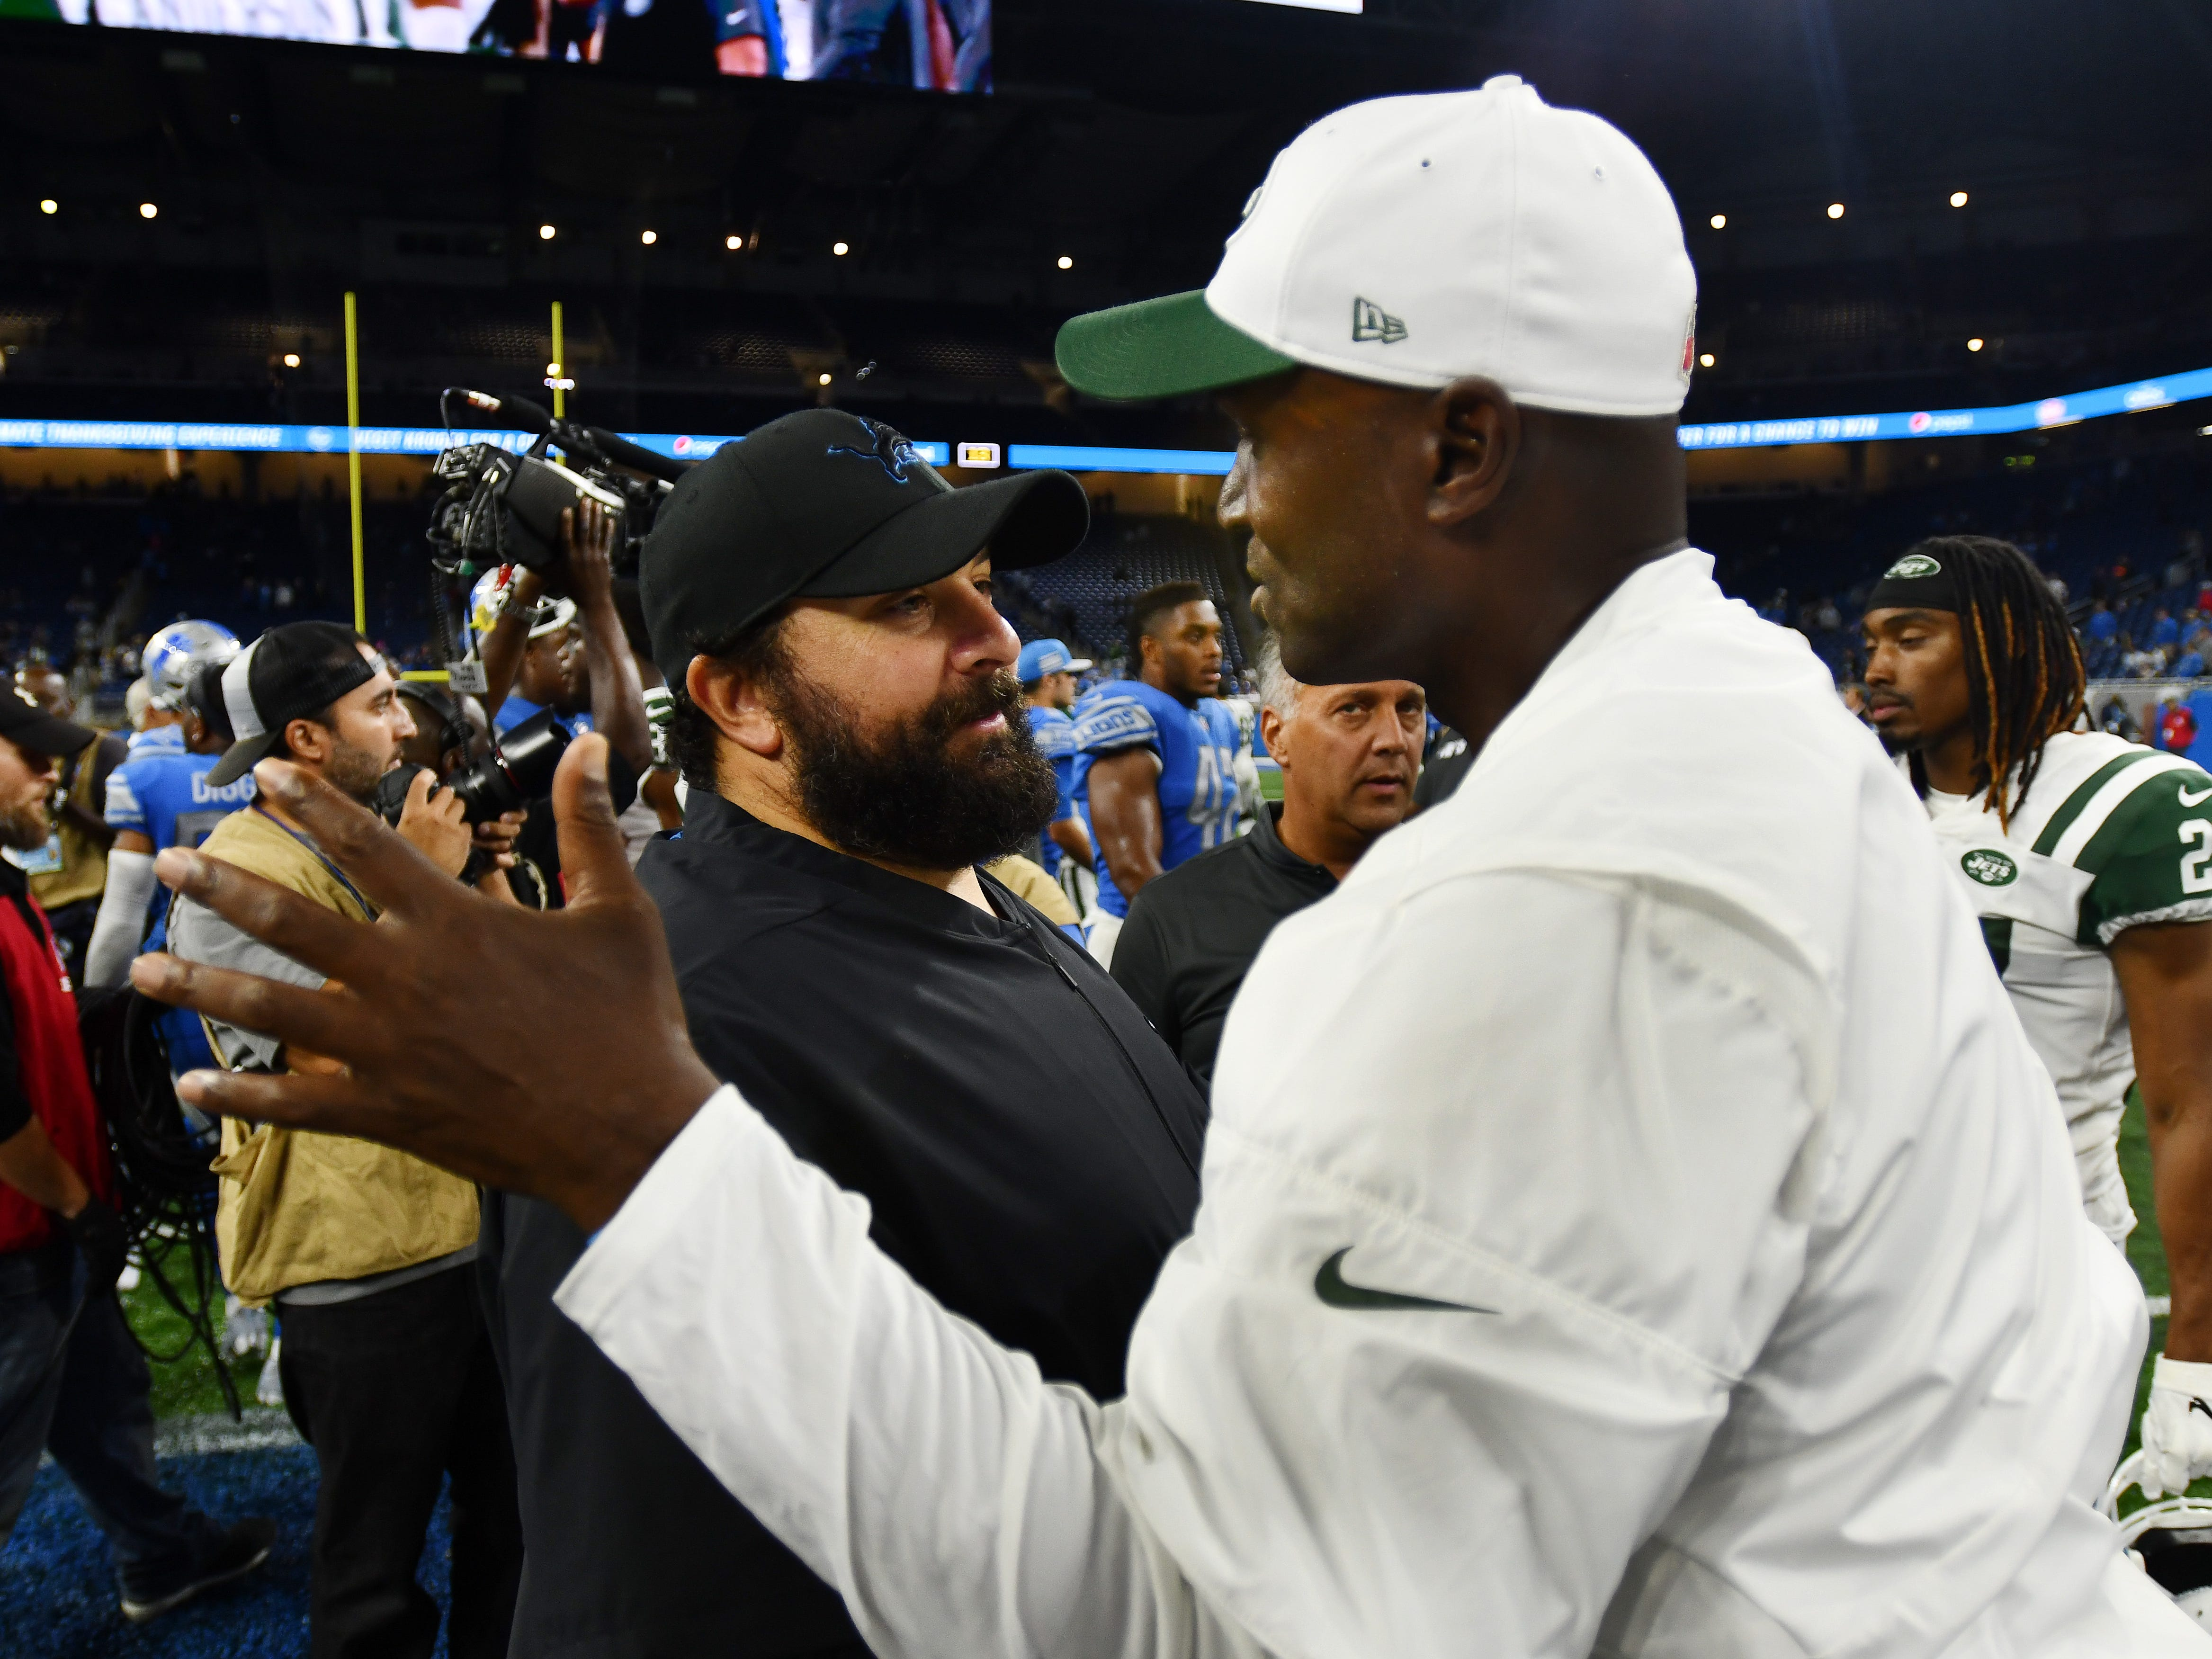 Lions head coach Matt Patricia and Jets head coach Todd Bowles meet on the field after Detroit loss to New York in the fourth quarter.